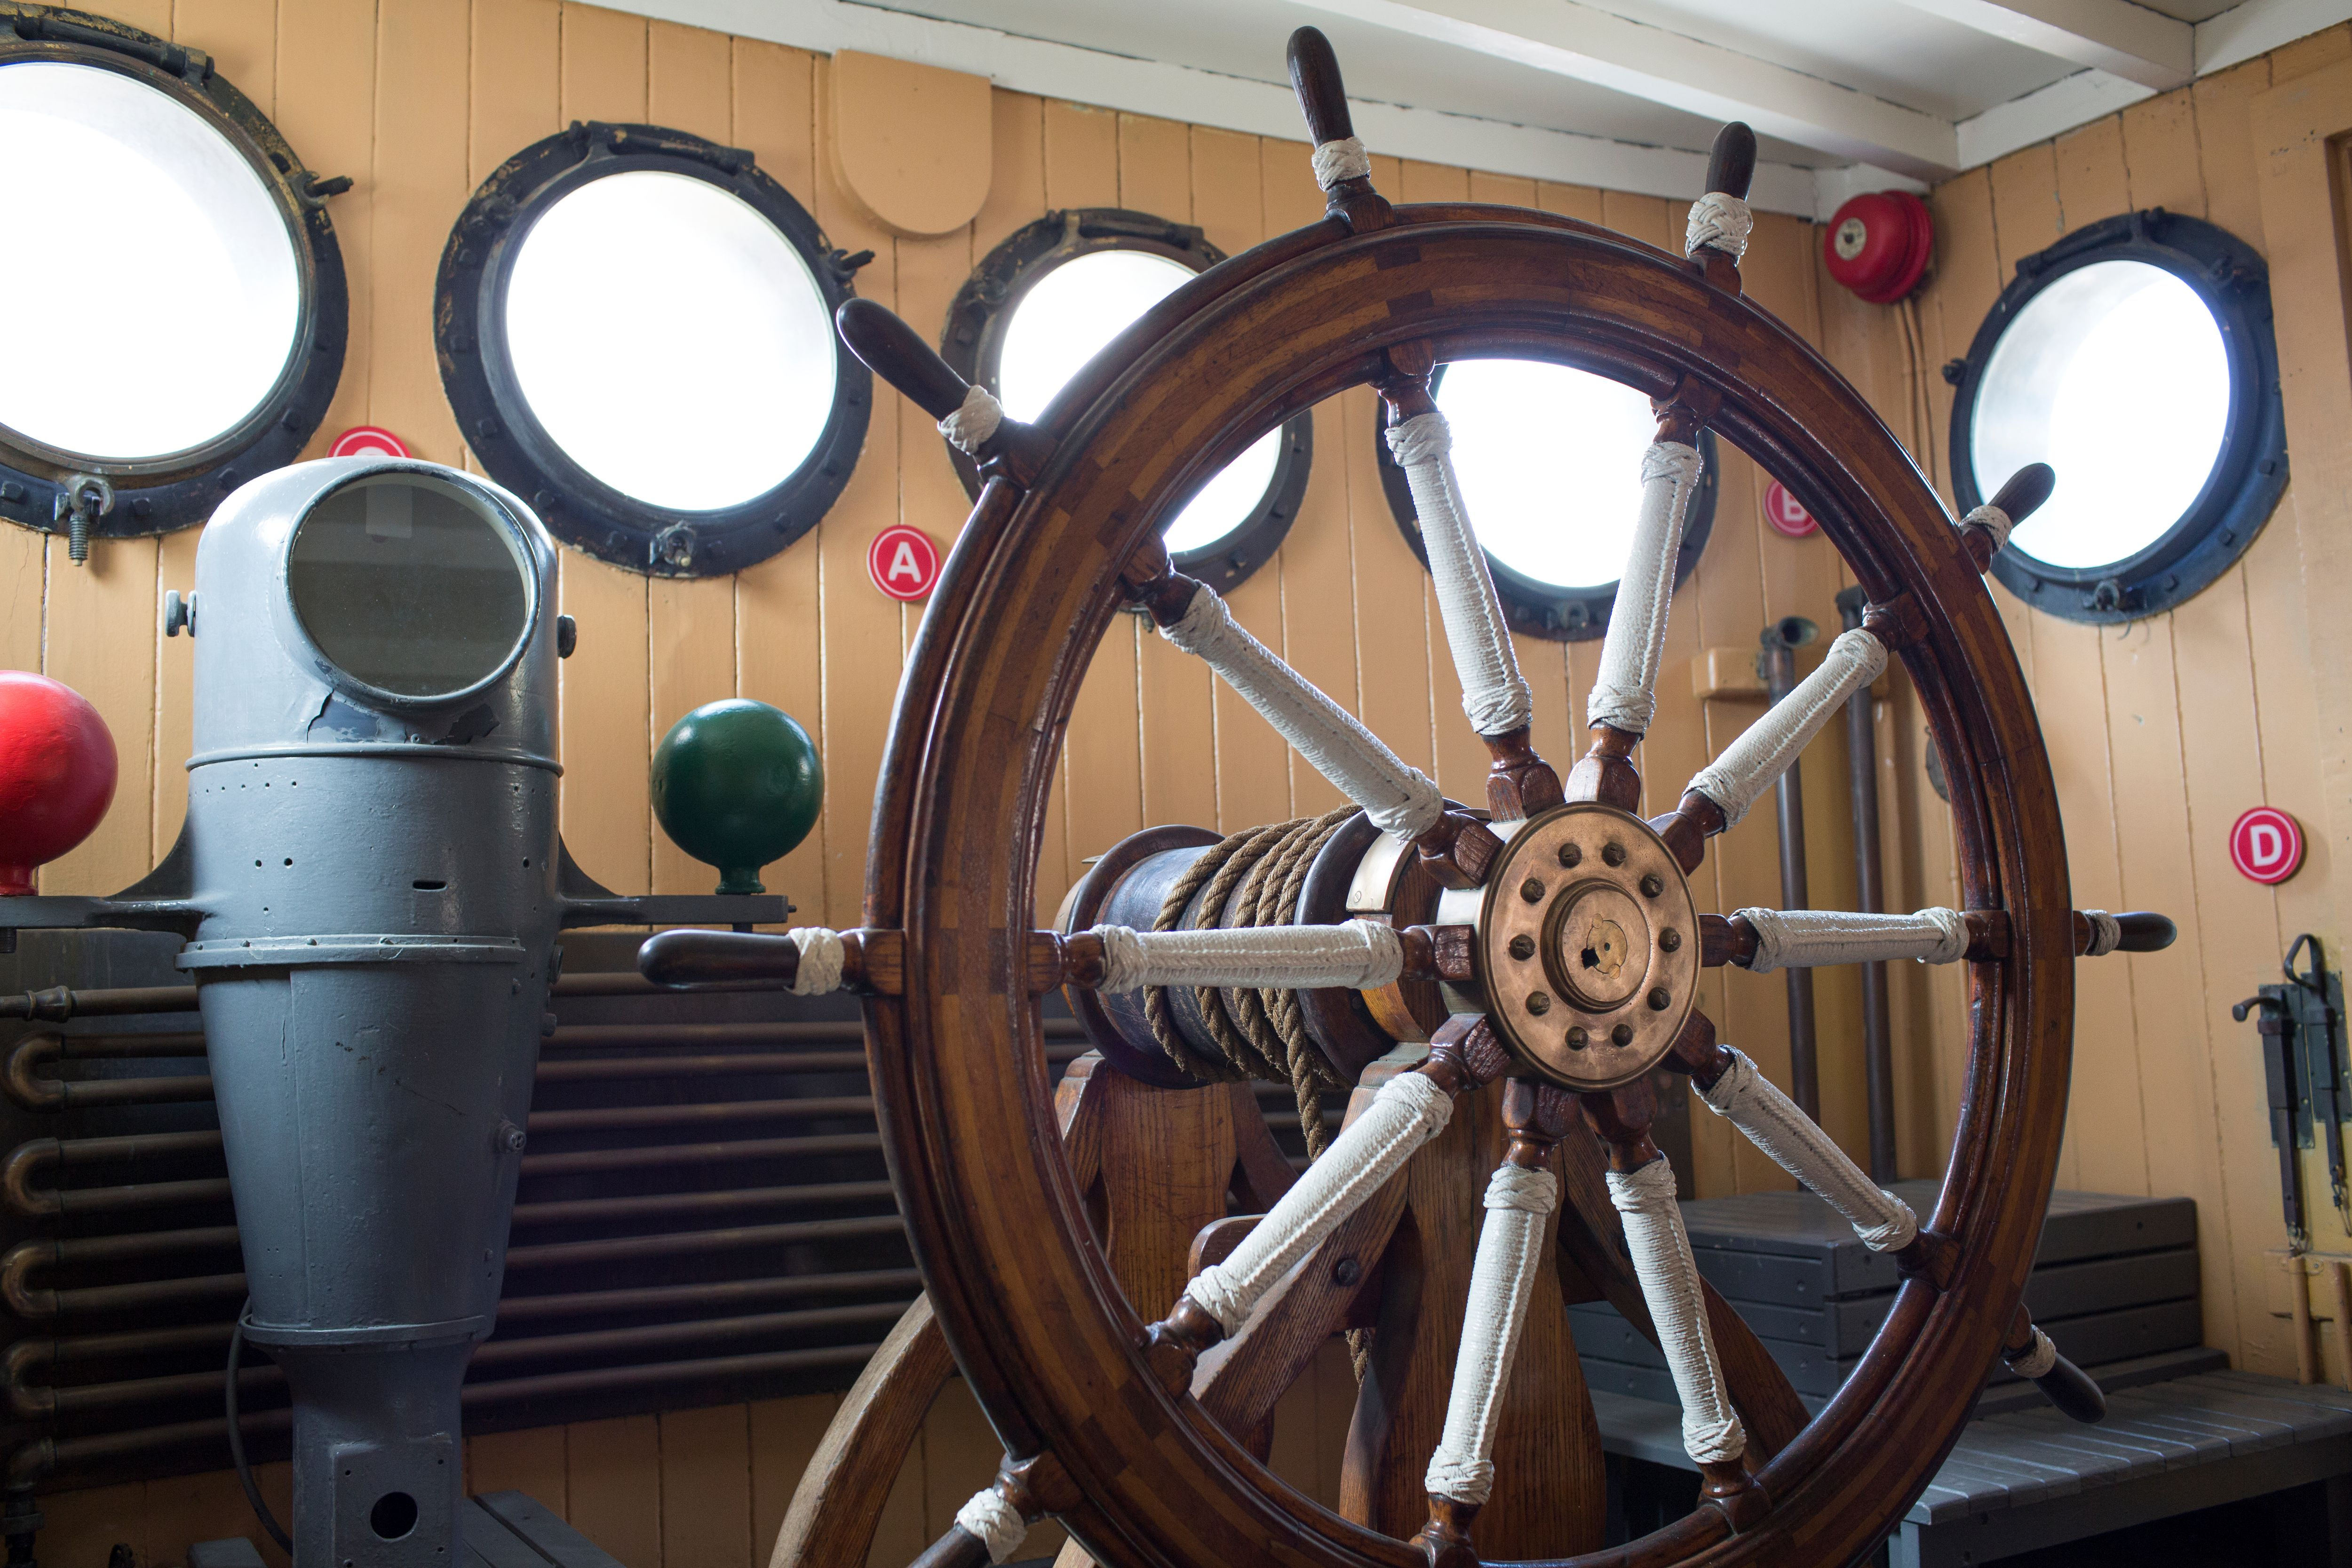 Free Tours of Lightship Ambrose at South Street Seaport Museum